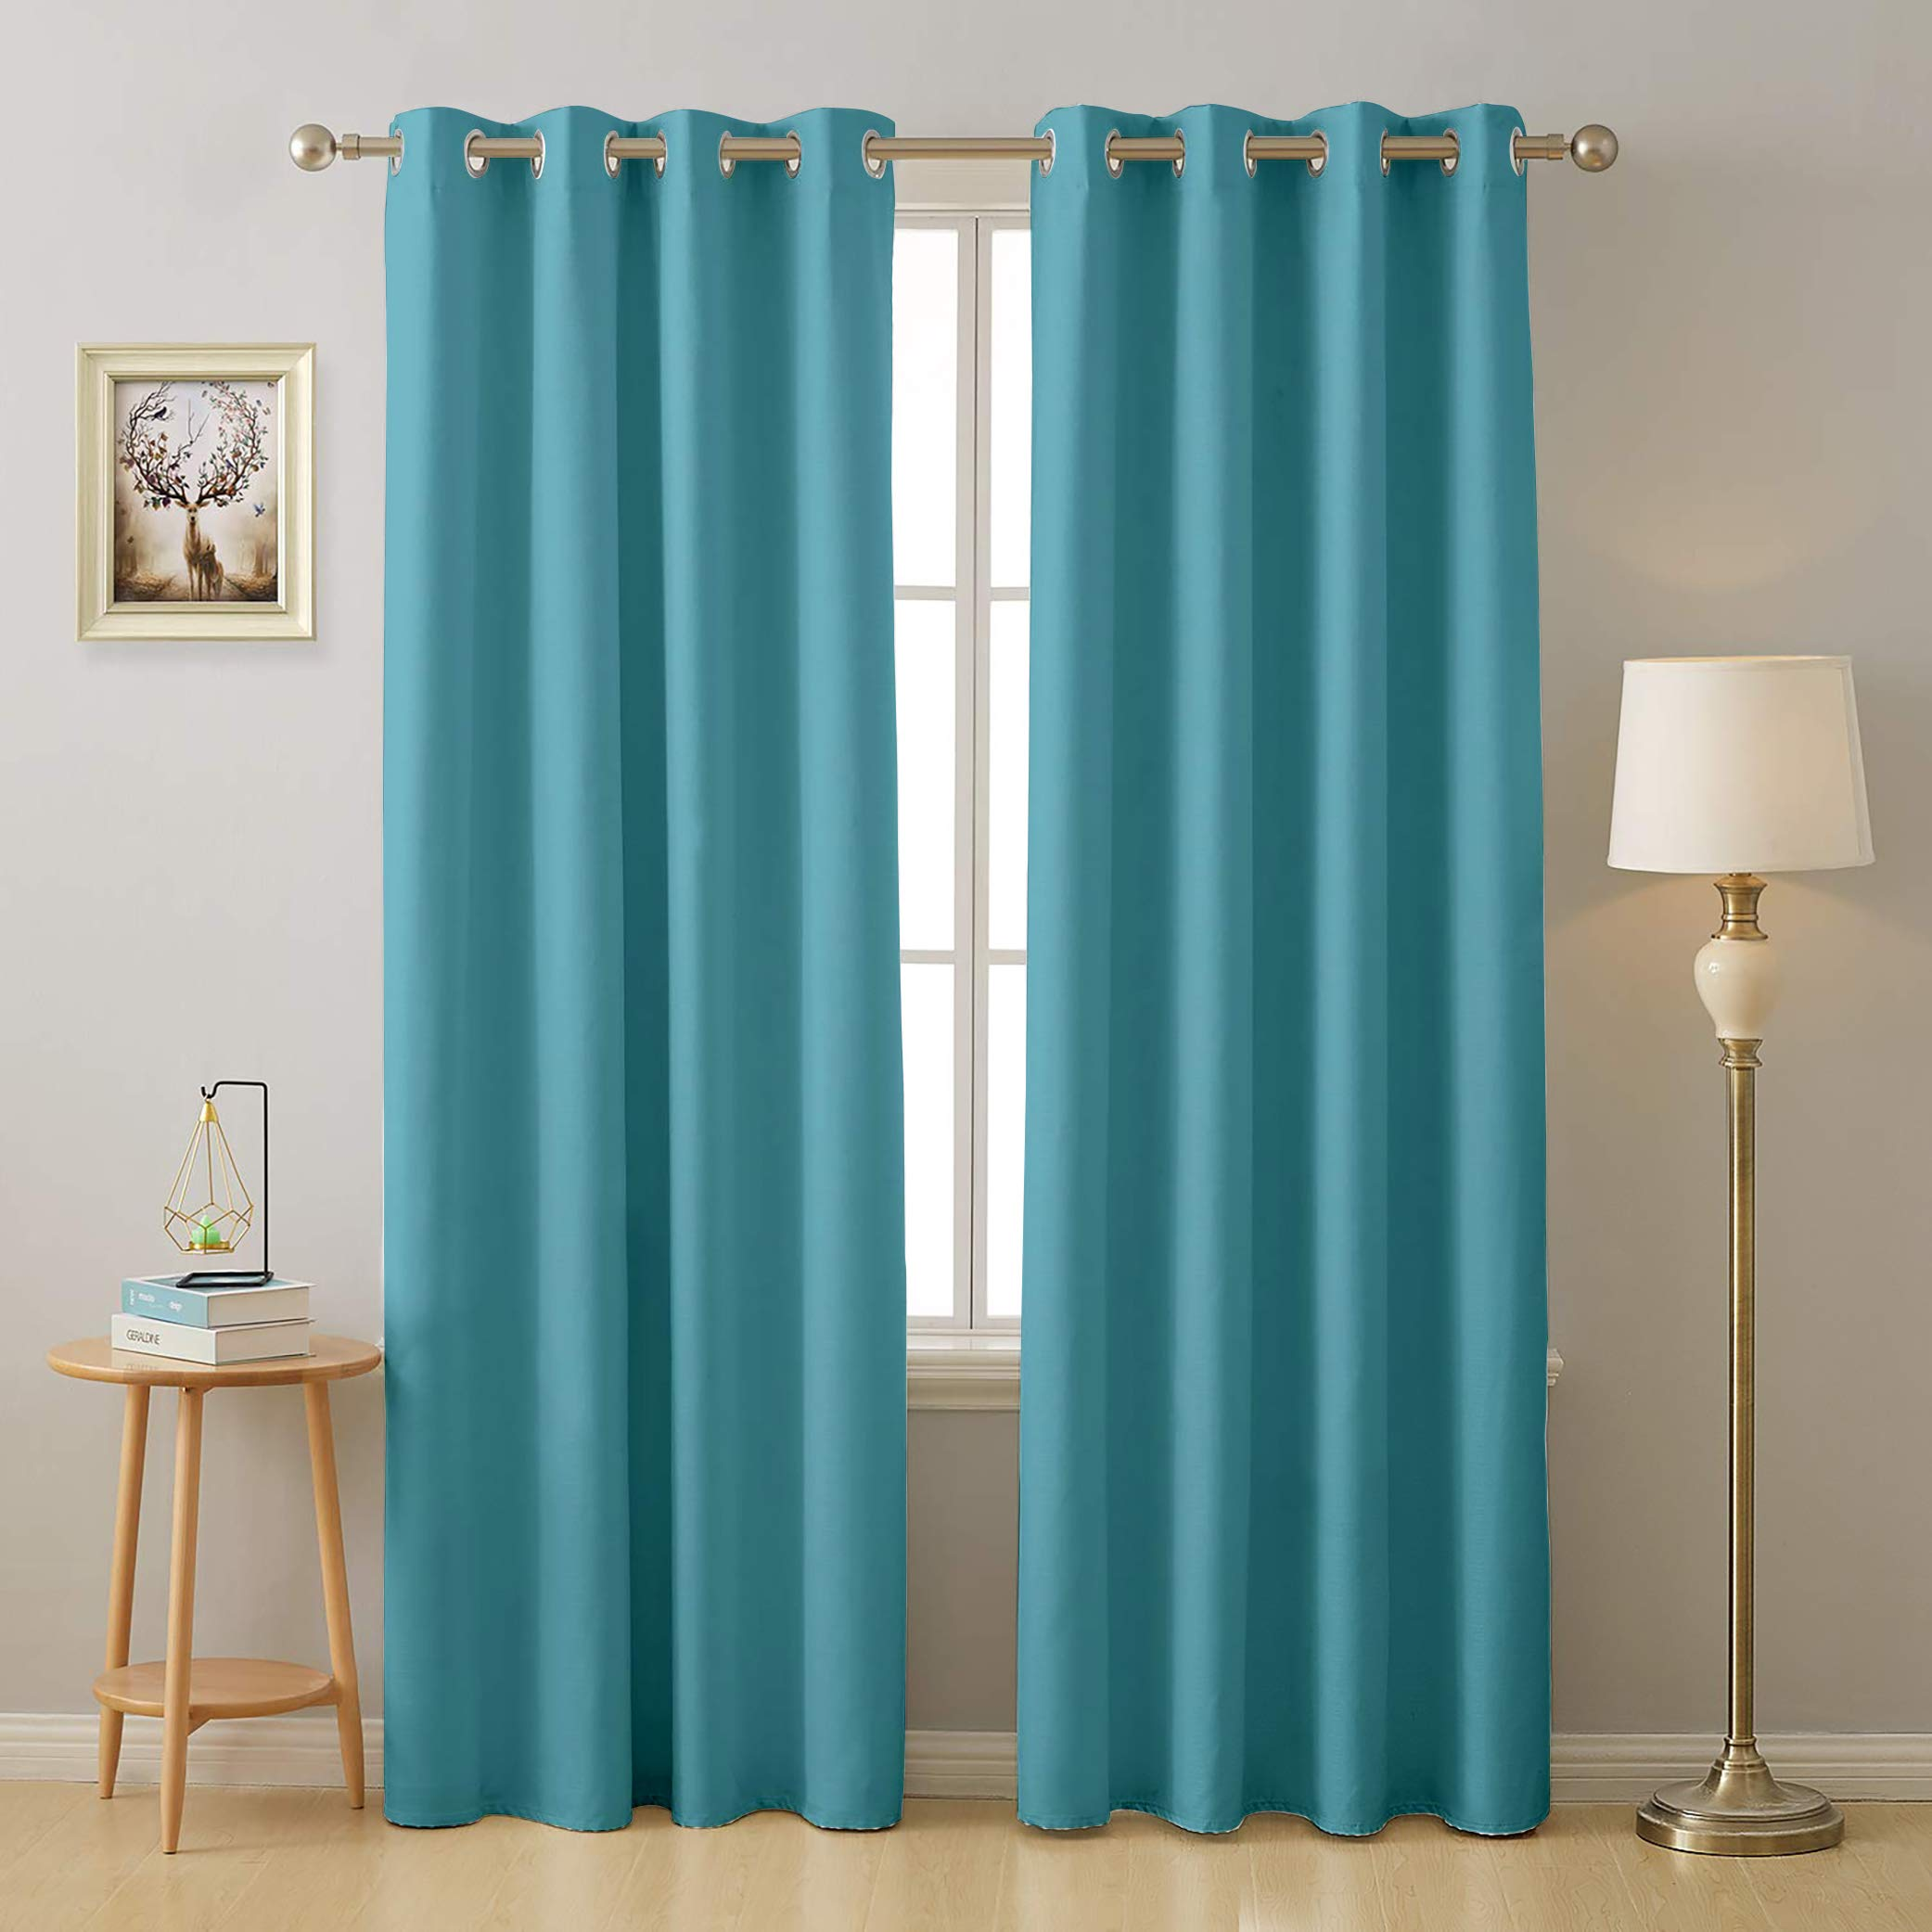 Cloth Fusion Valance Room Darkening 2 Pc Blackout Curtains for Door 7 Feet- Peacock Blue (B07H91FJ6R) Amazon Price History, Amazon Price Tracker